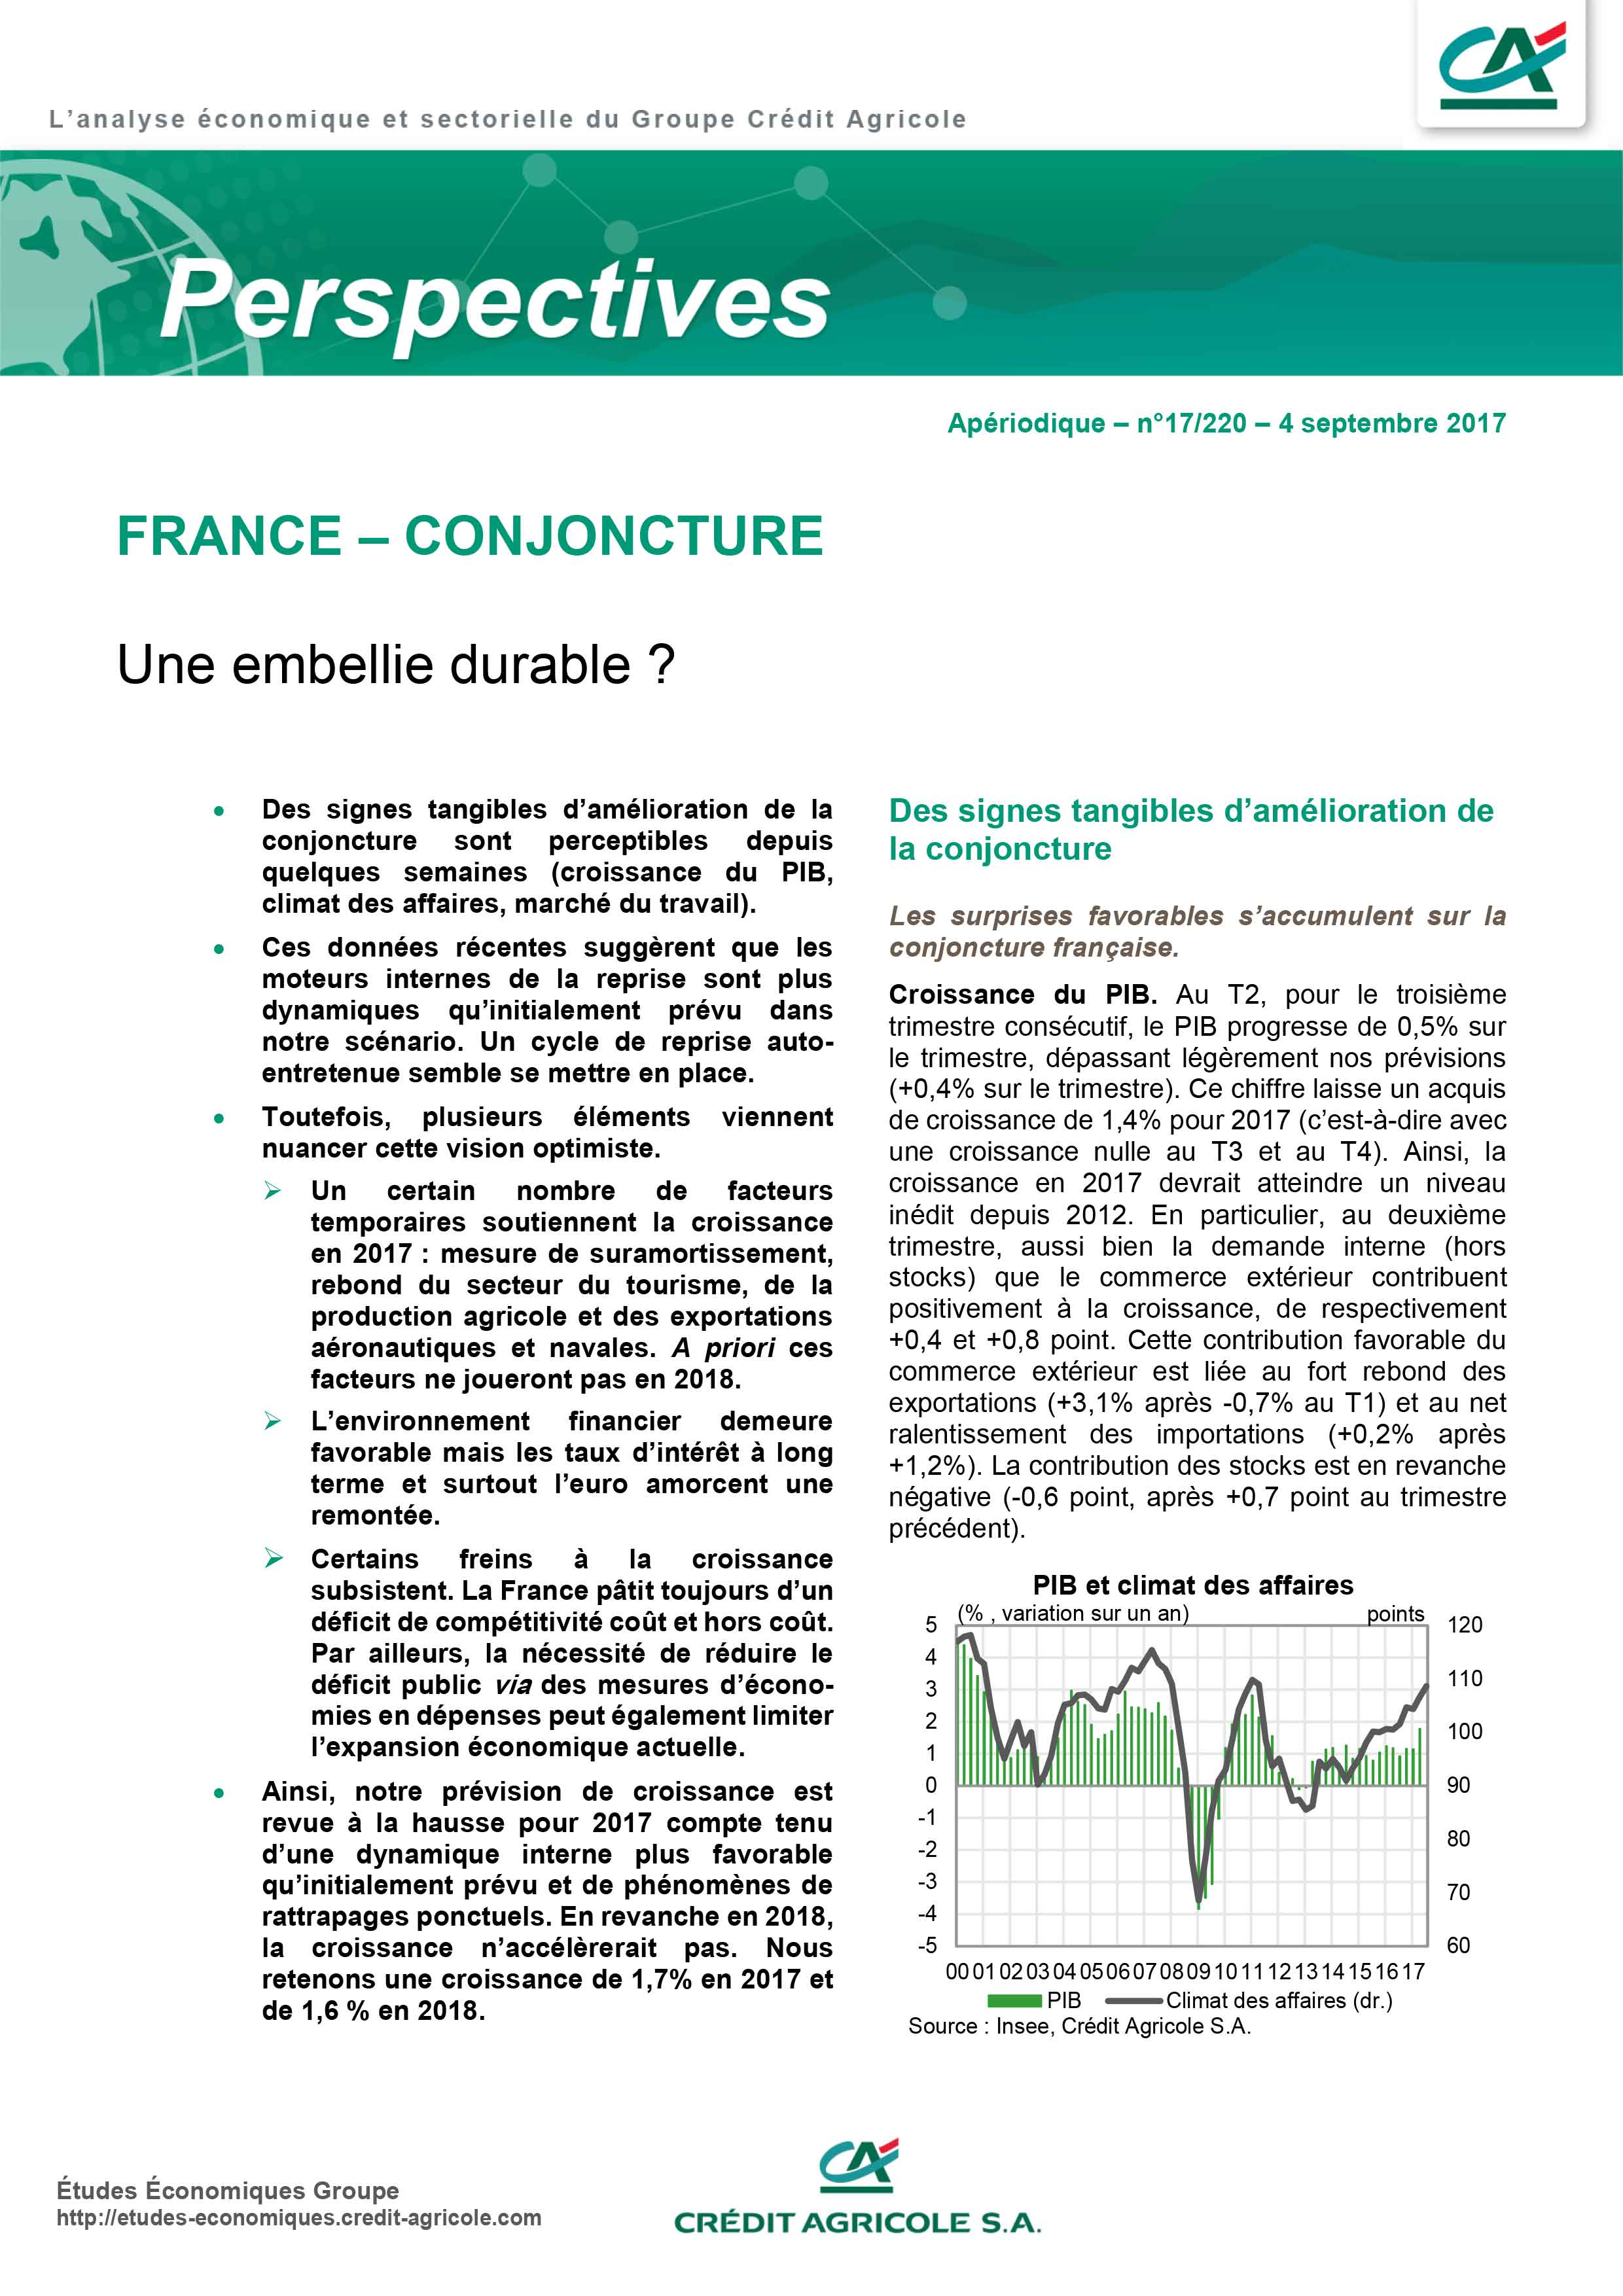 France - Une embellie durable ?